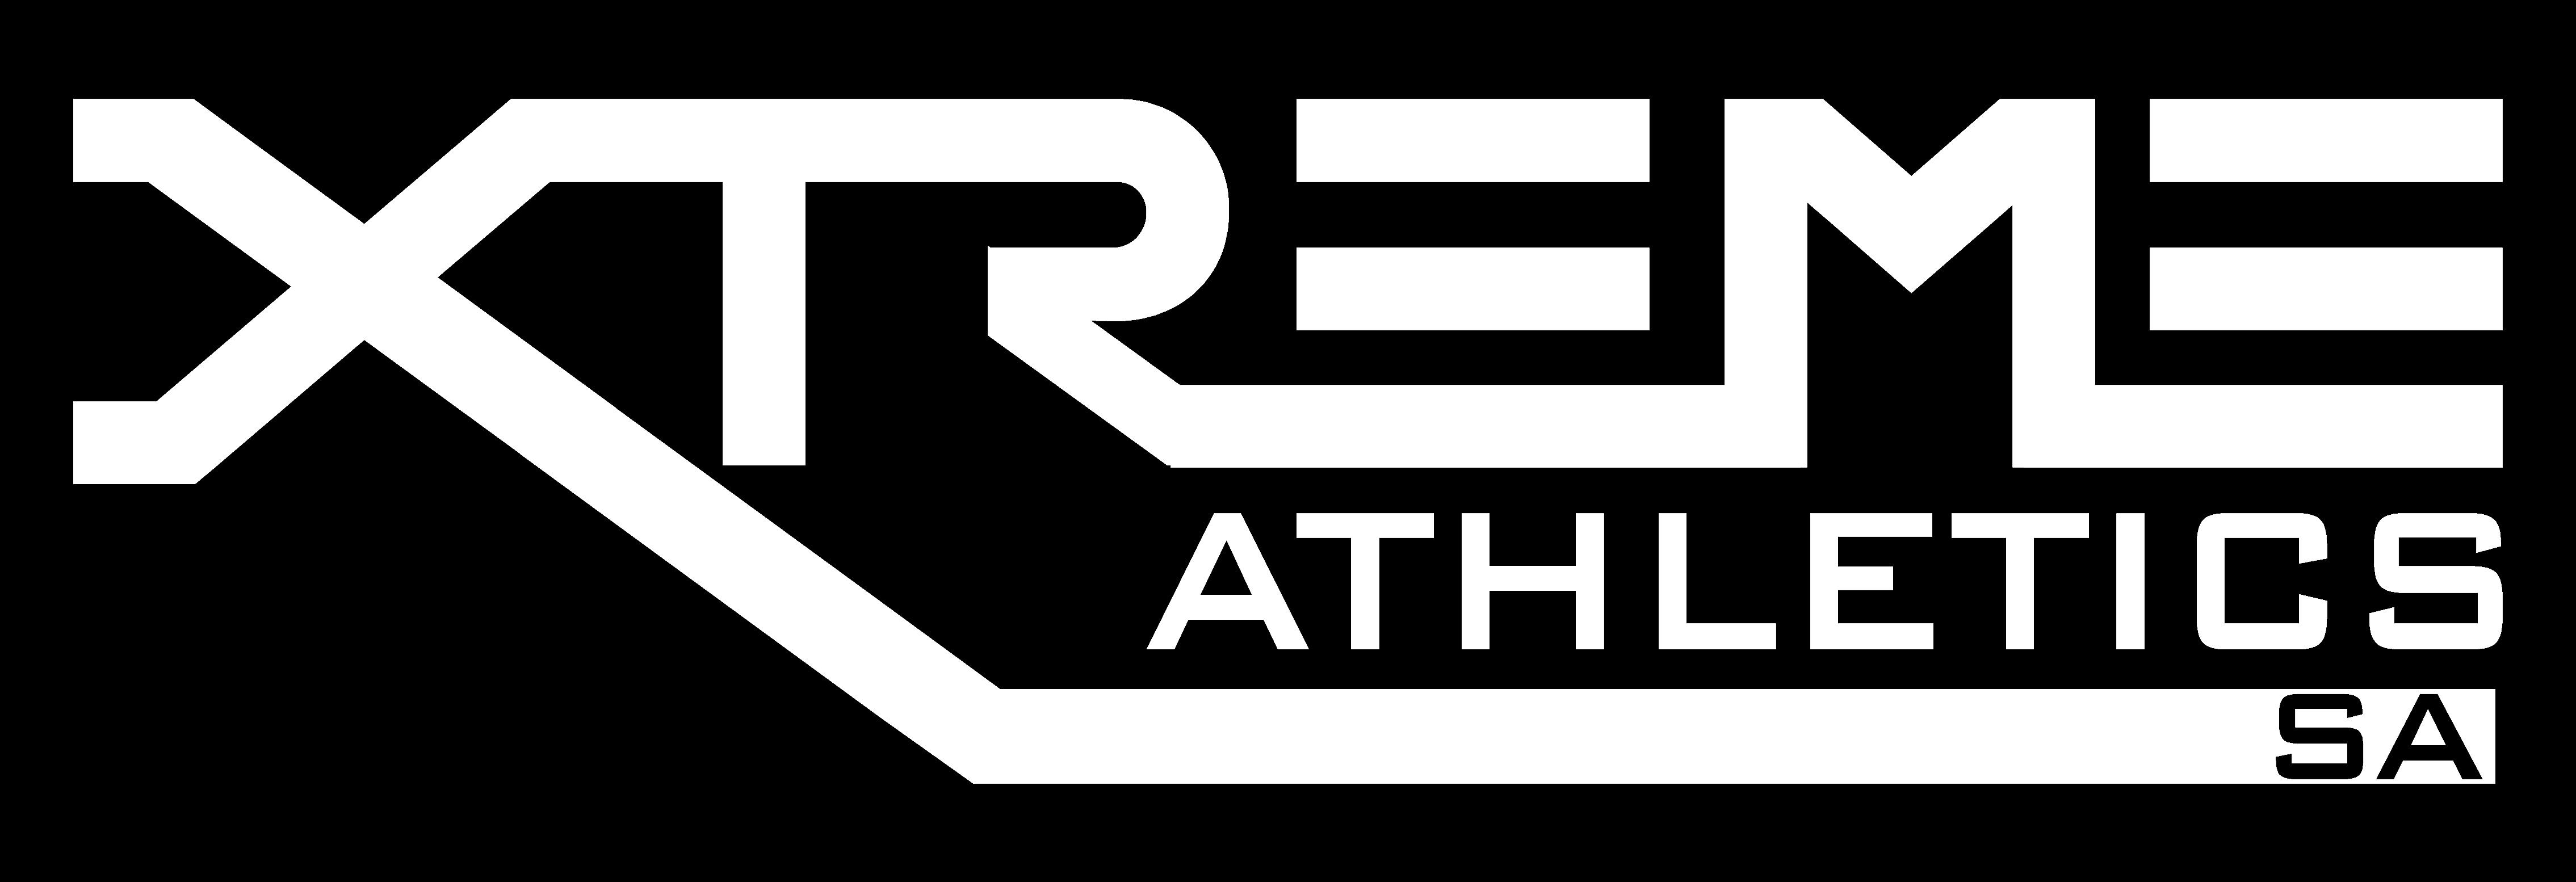 Xtreme athletics logo  black fill